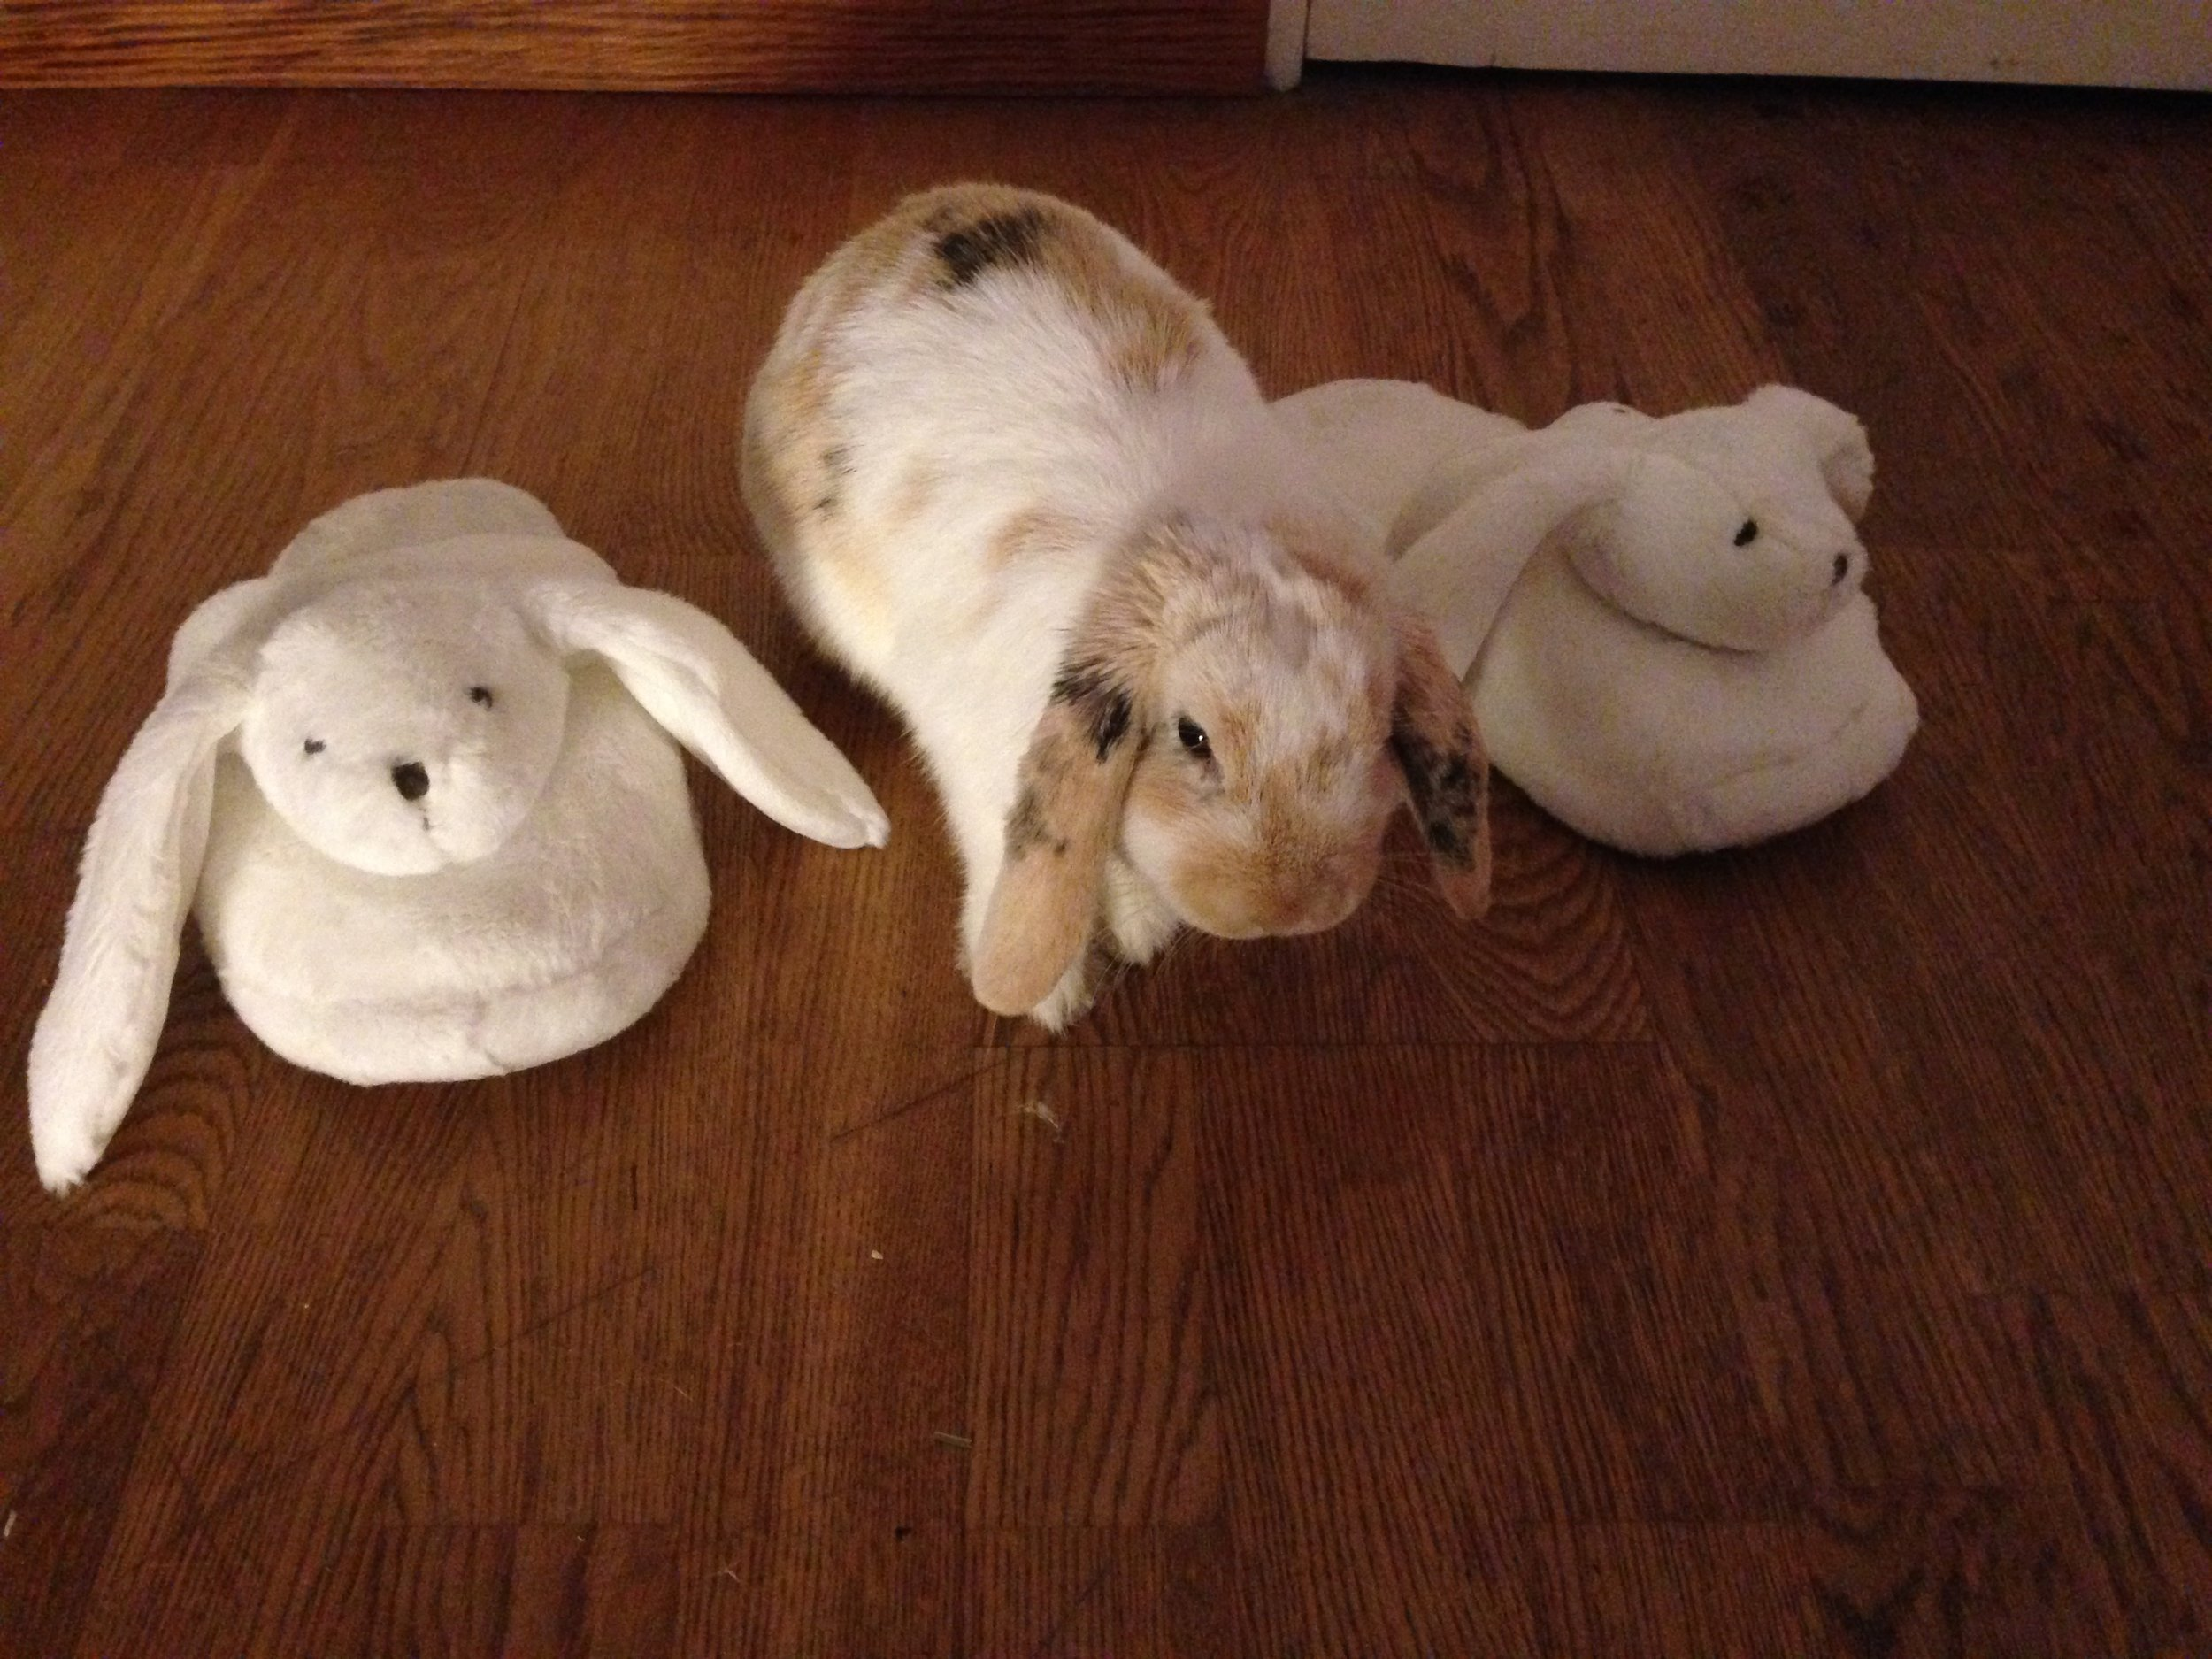 Bunny Hangs Out with Some Plush Friends 2